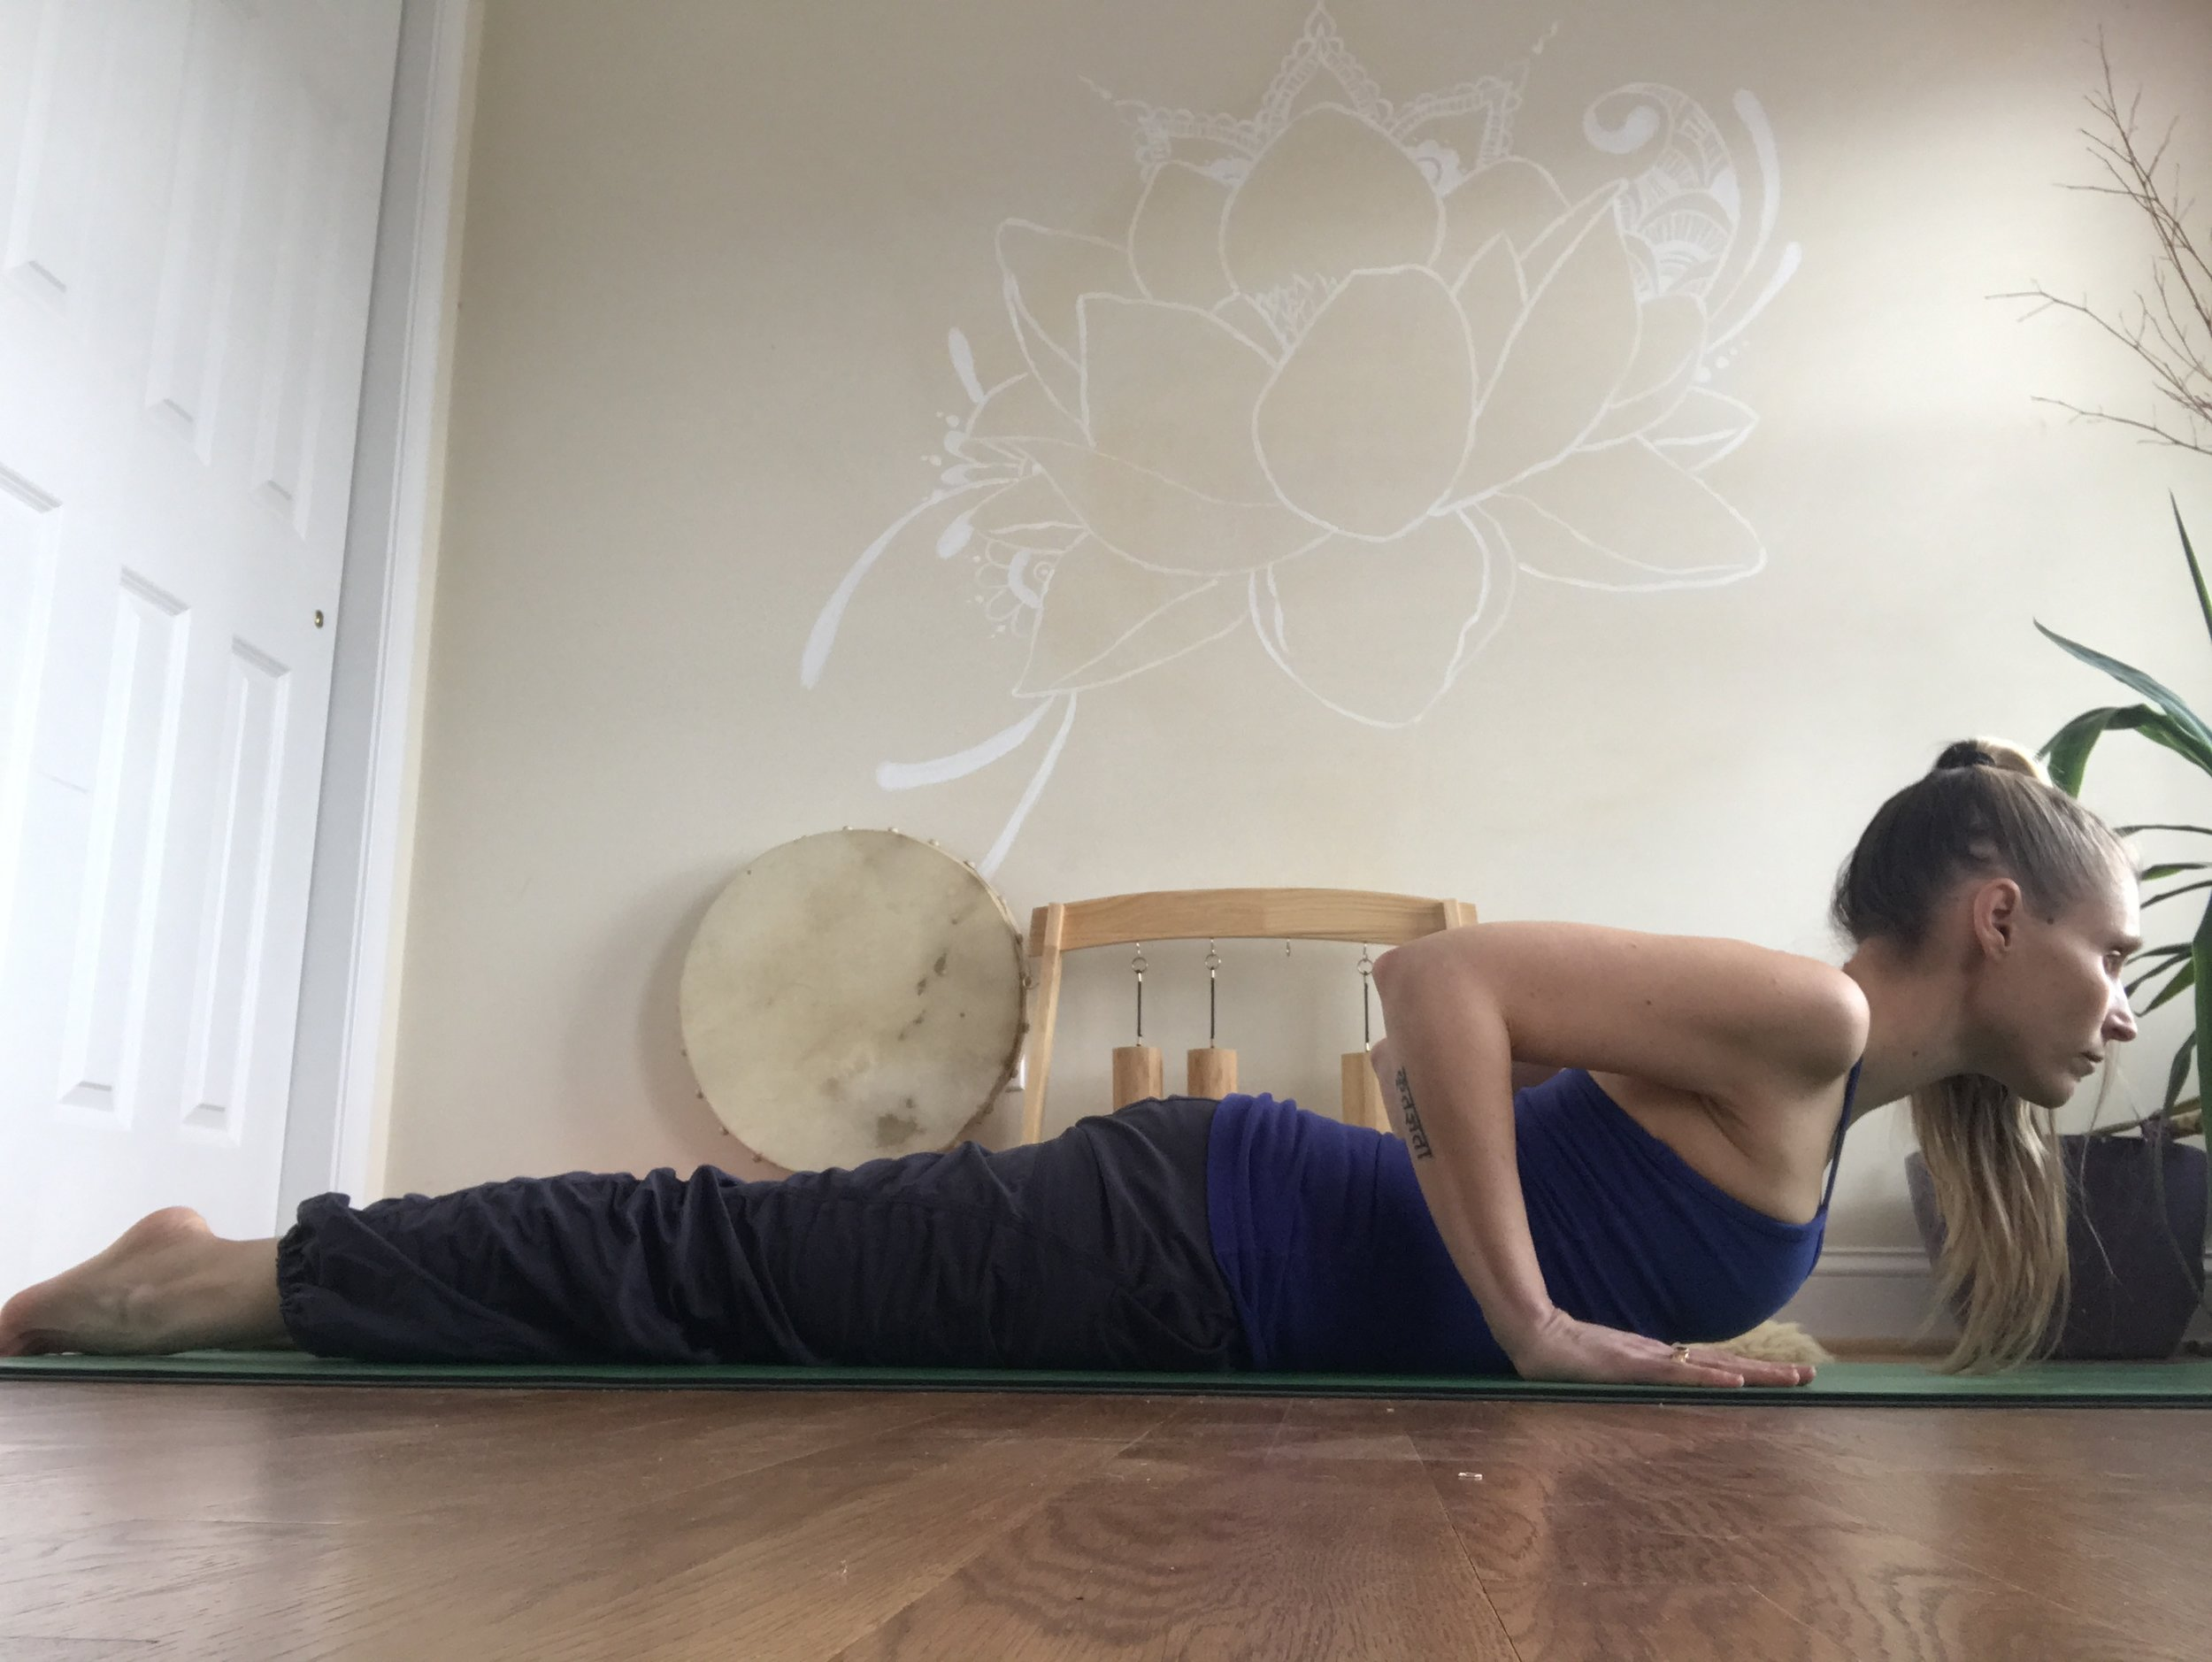 Cobra - This pose has the potential for grounding the front side of your body. Gently press your feet down as you simultaneously press your palms into the mat. Go for a gentle, even pressure. No gripping or strain. If it feels better, you might even let your forehead come down to the mat and stay for a couple breaths in this shape.